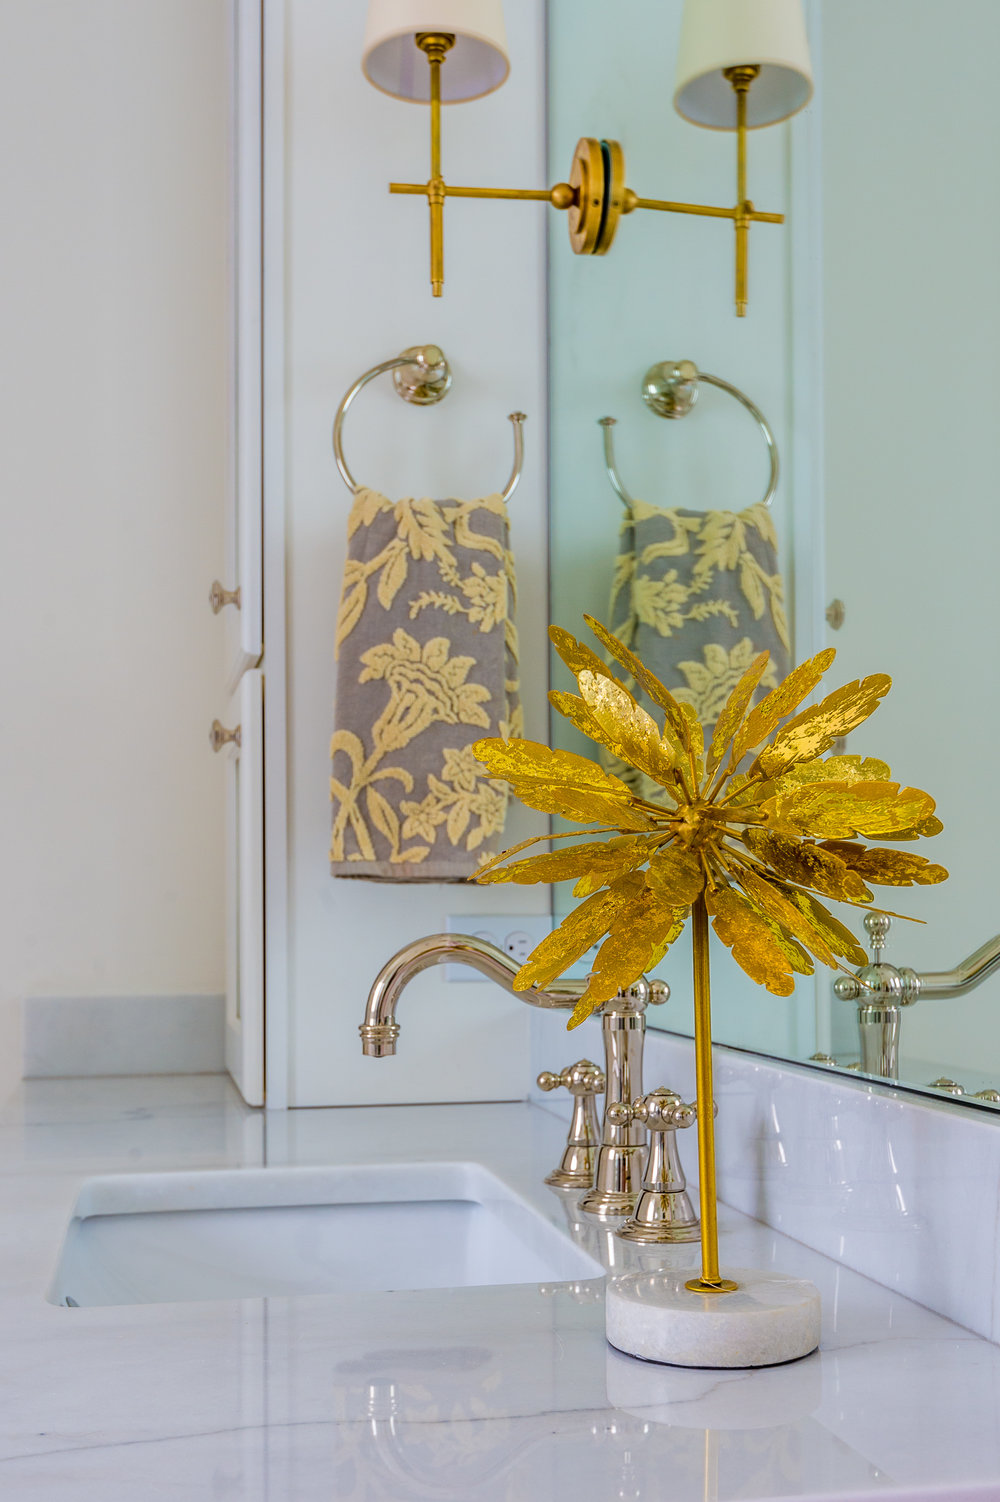 KHB Interiors details gold master bathroom metairie interior decorator custom drapery new orleans.jpg